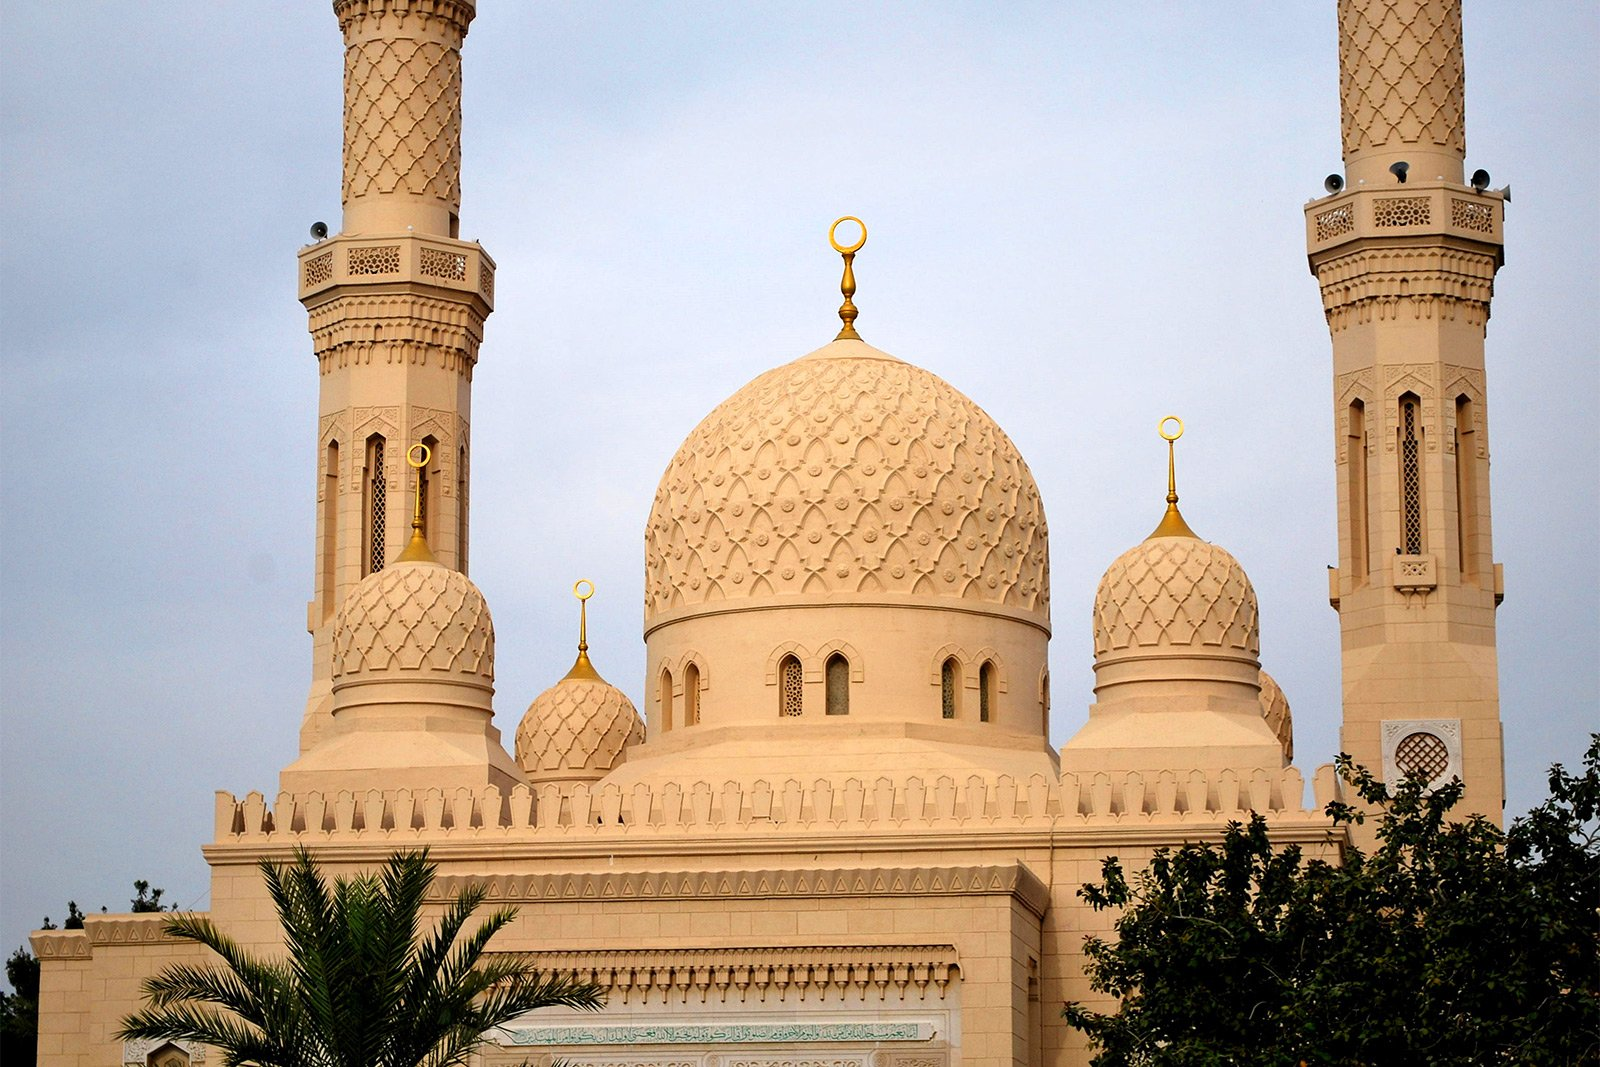 How to visit the Jumeirah Mosque in Dubai